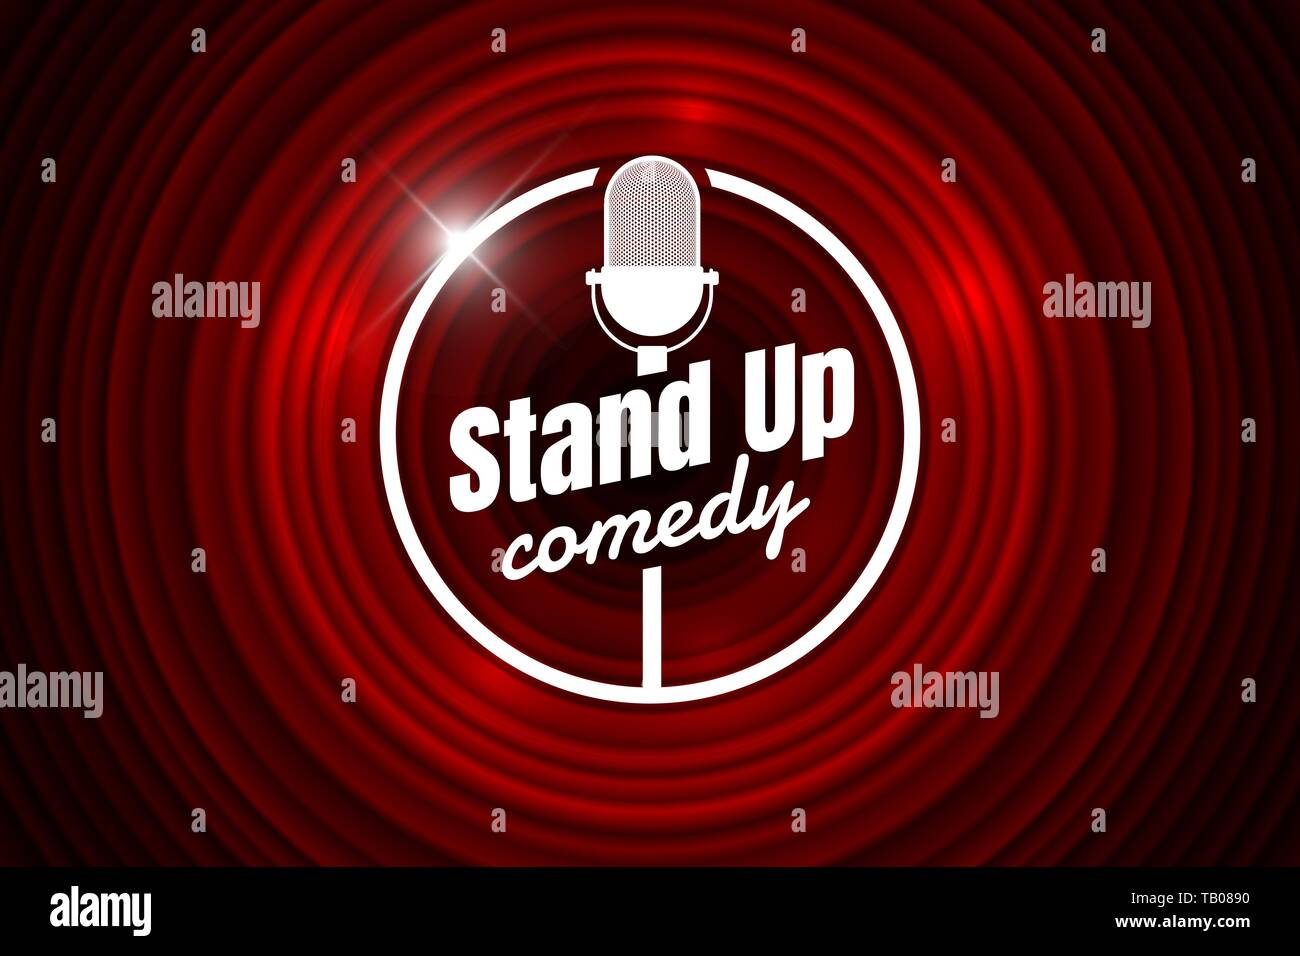 Stand up comedy night live show open mic on empty theatre stage. Vintage microphone against red curtain backdrop. Retro vector art image illustration. Stock Vector